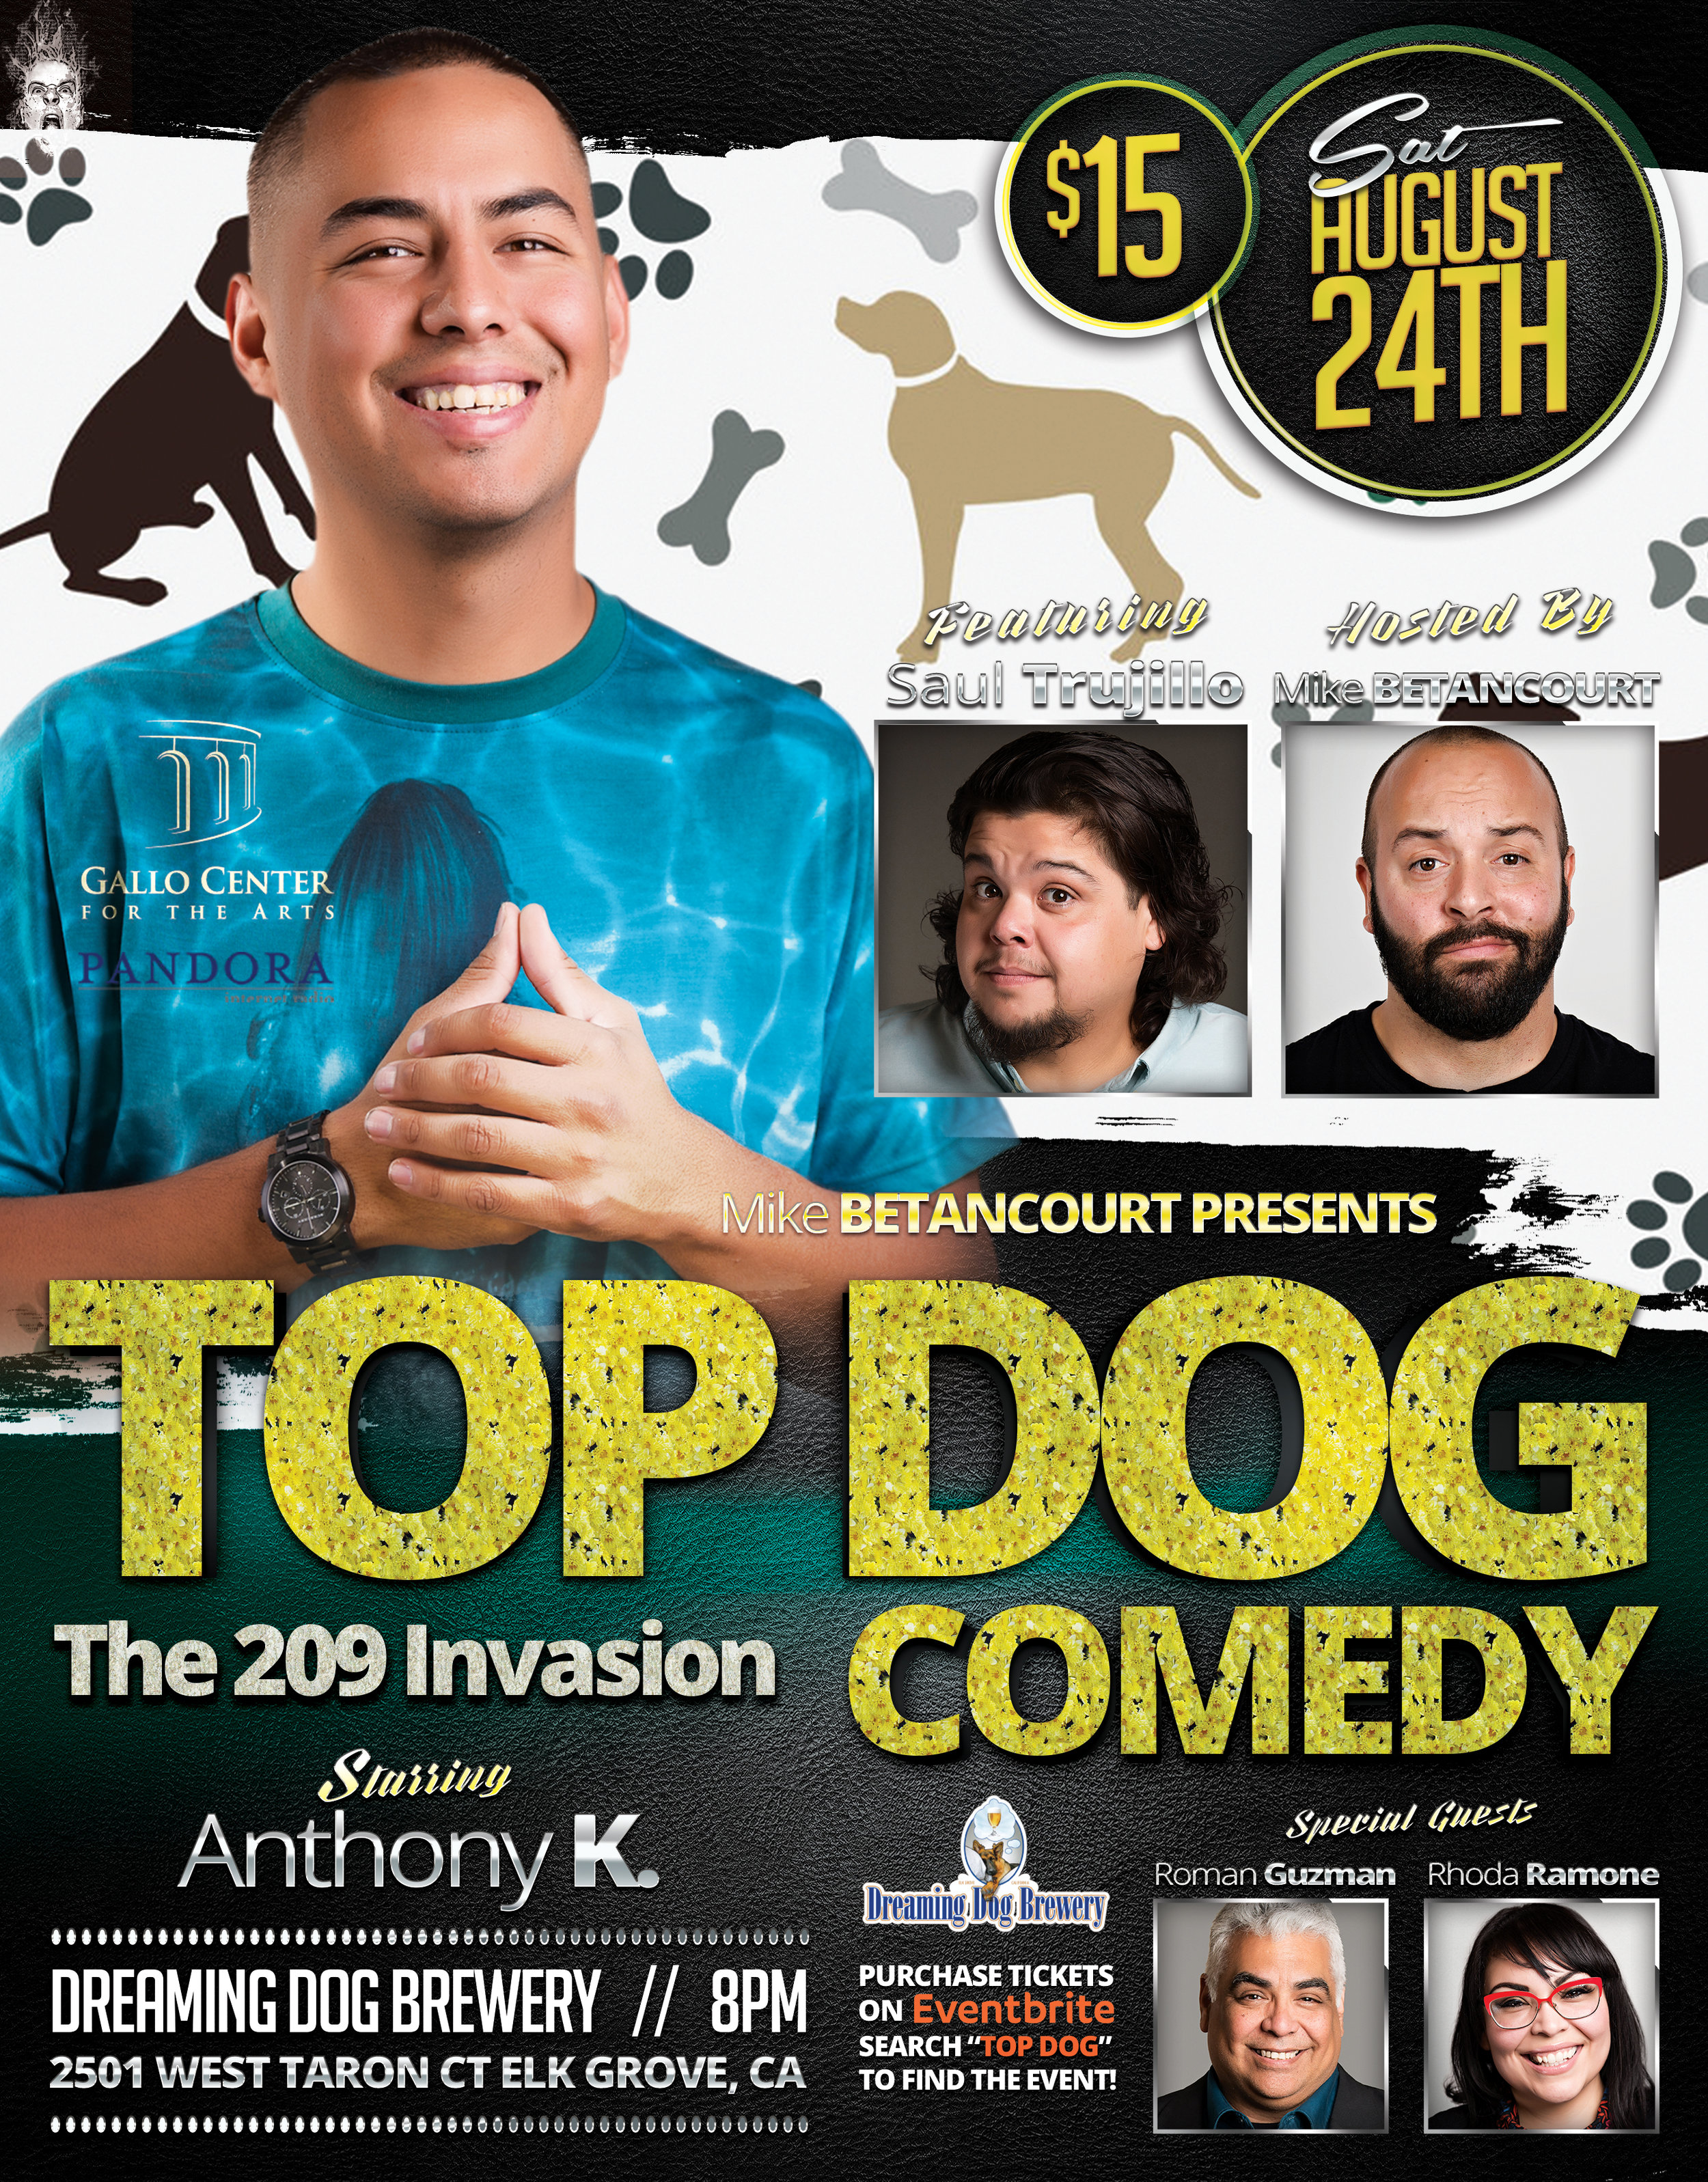 Top Dog Comedy - Aug 24th.jpg